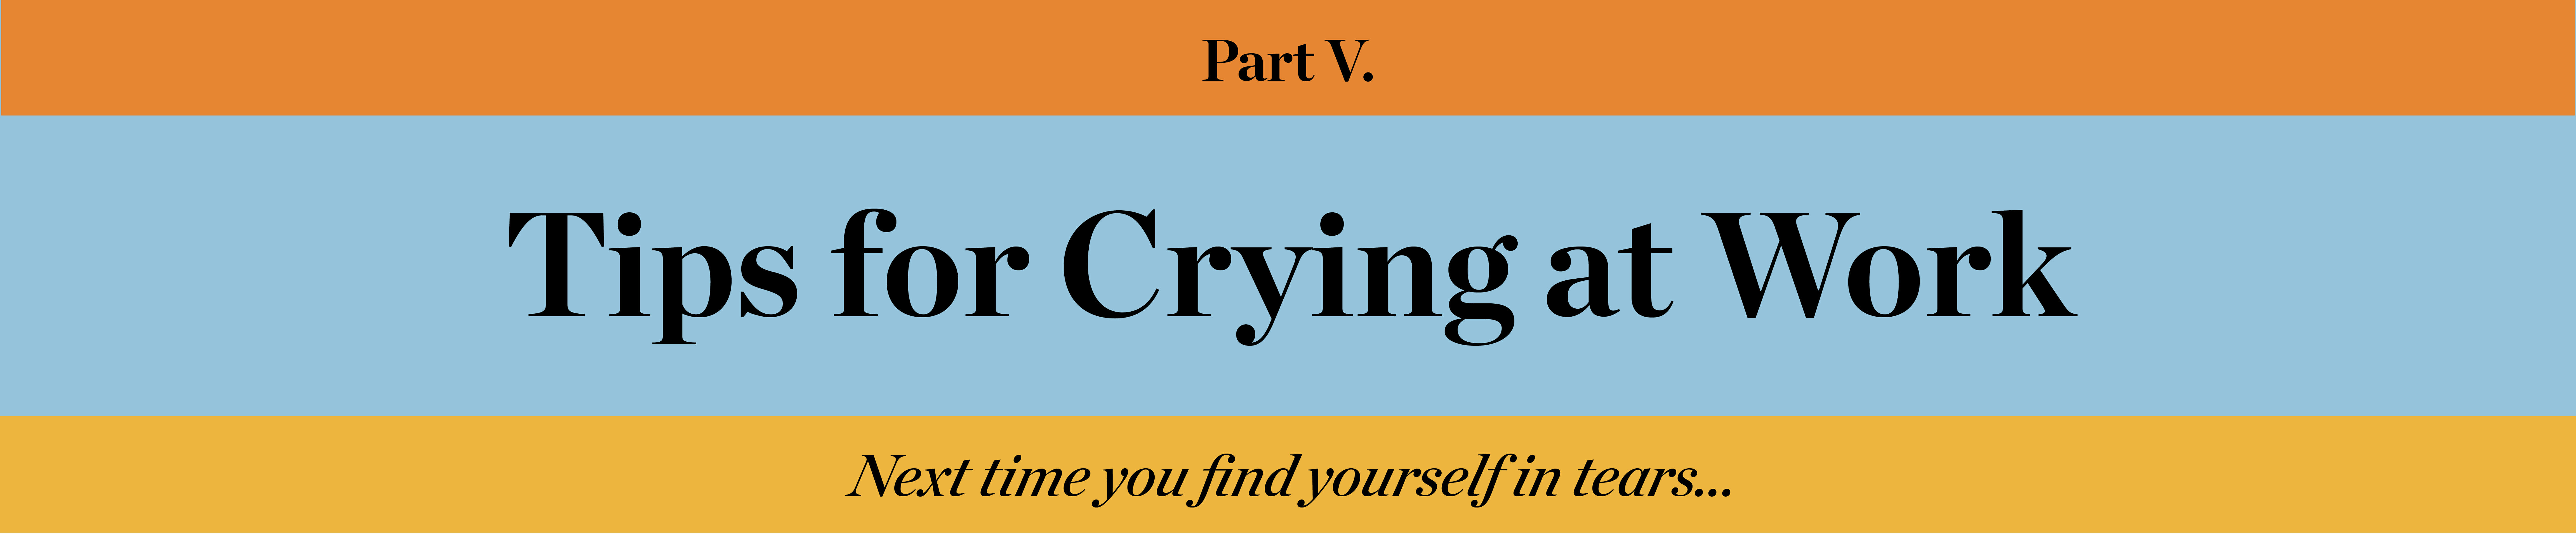 Tips for Crying at Work